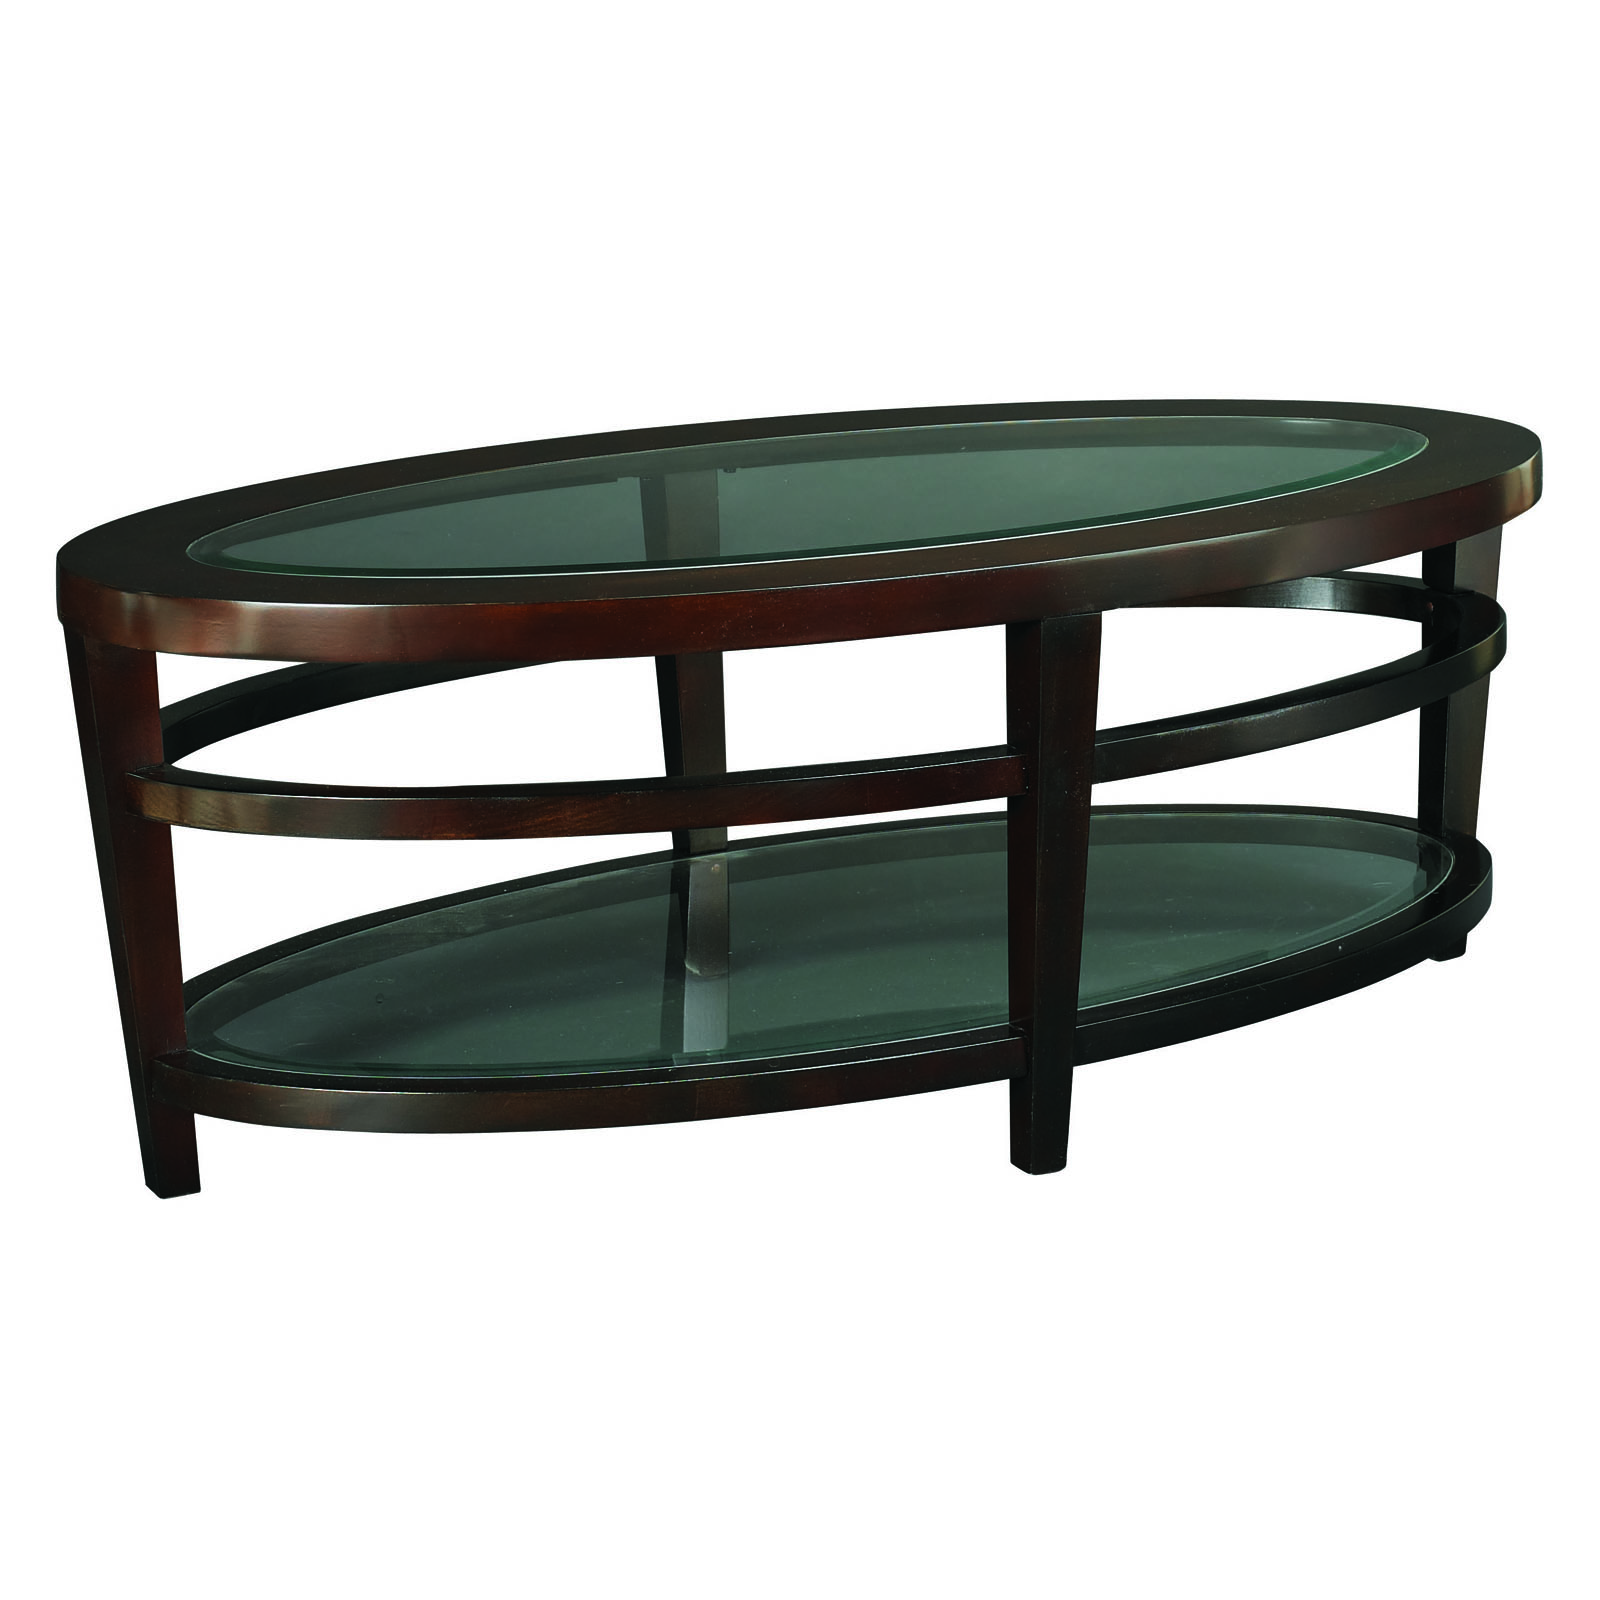 Hammary urbana oval coffee table coffee tables at hayneedle for Table urbana but